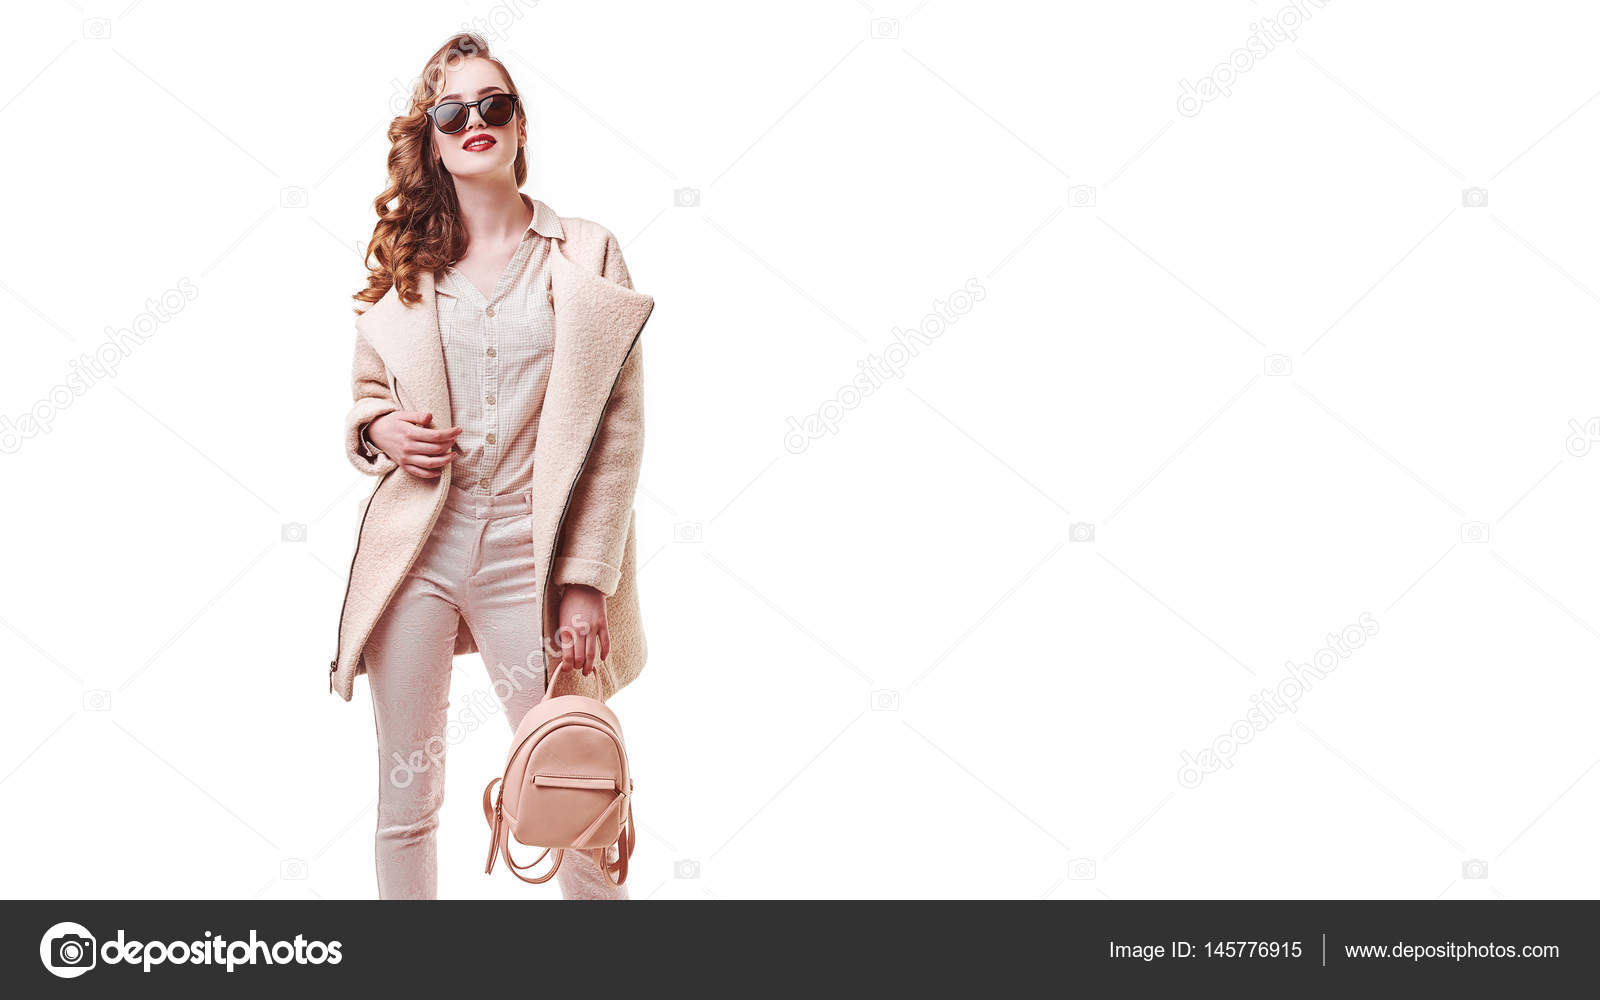 Woman Style And Fashion Clothes Female Model Wearing Stylish Fashionable Clothing Light Pink